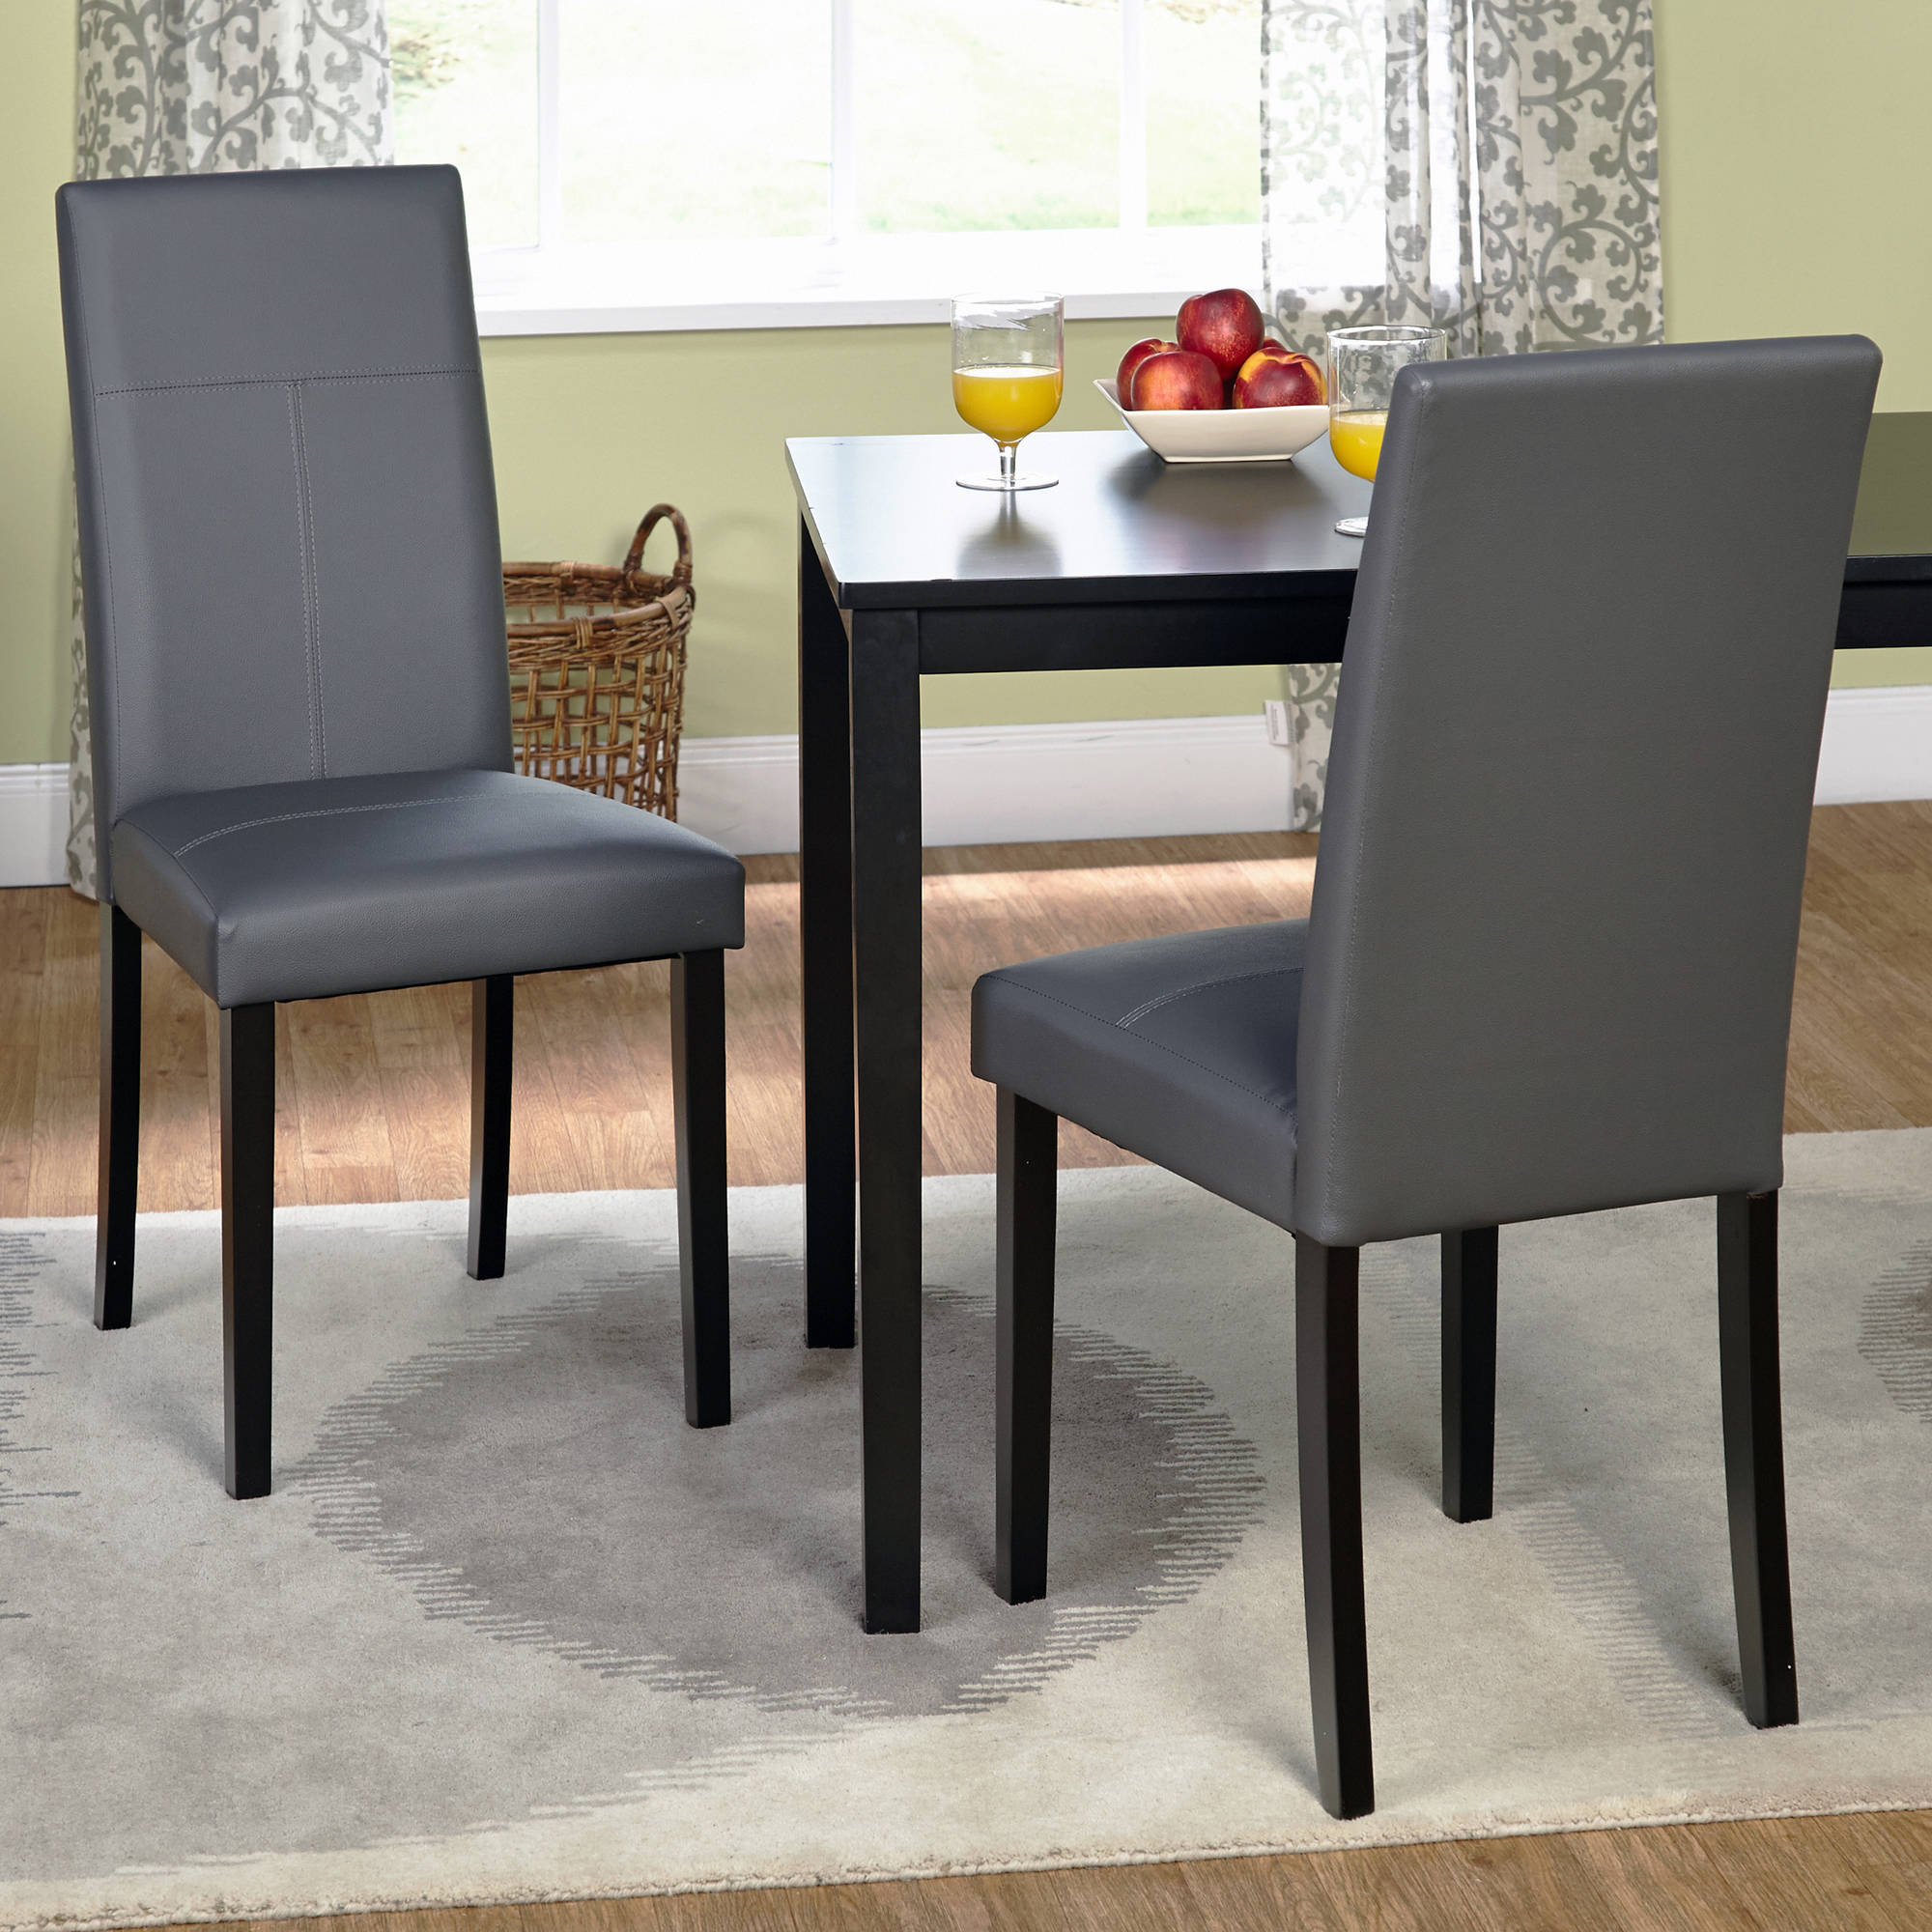 Faux Leather Parson Dining Chair, Set of 2 - Walmart.com